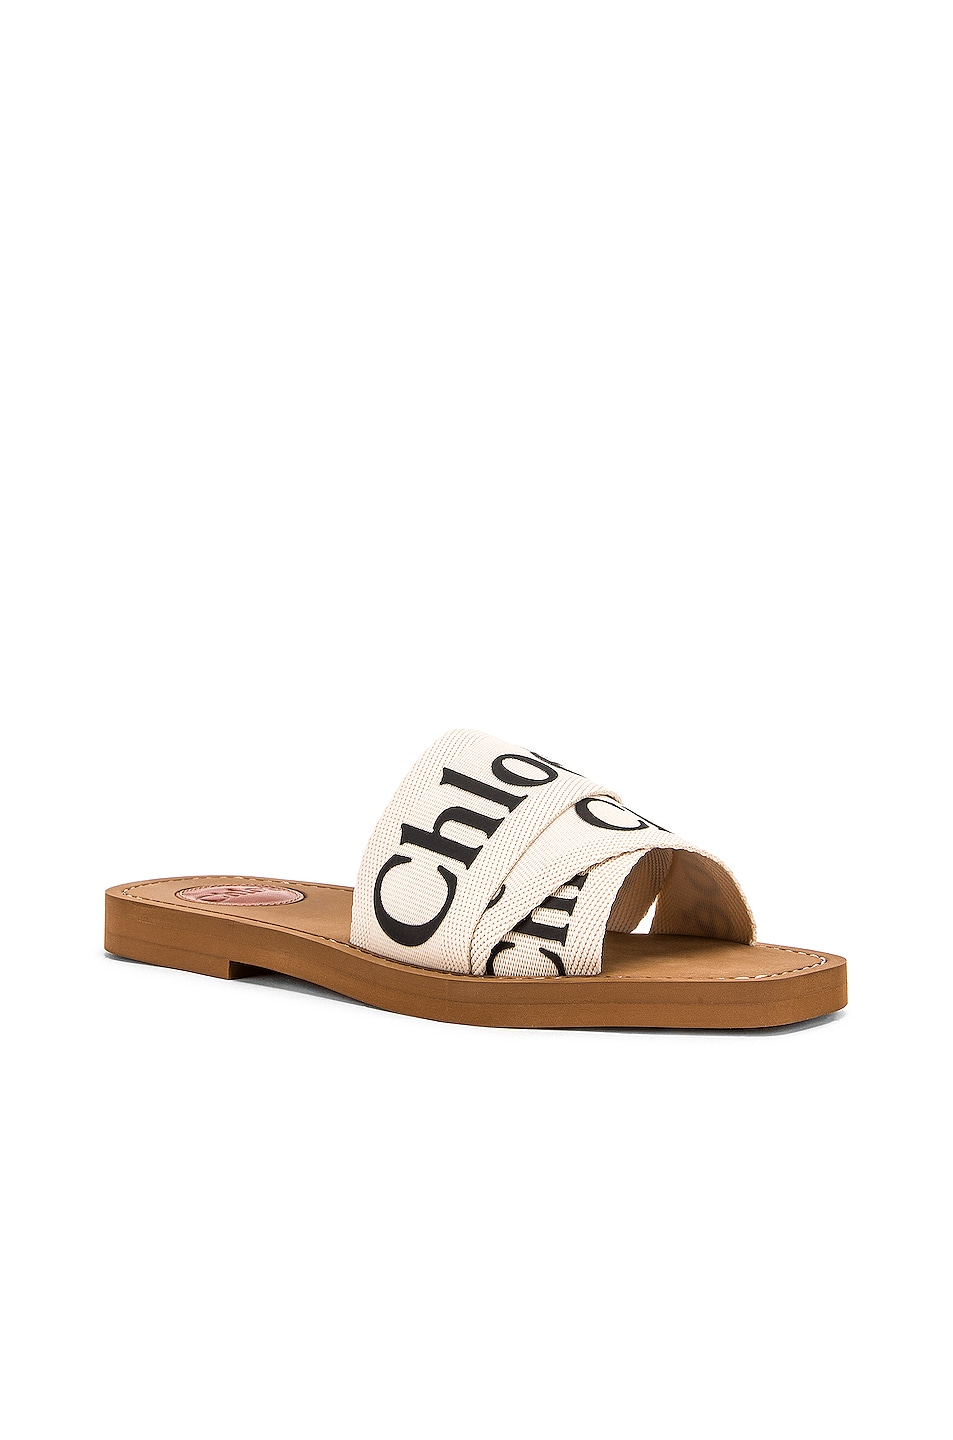 Image 3 of Chloe Logo Sandals in White